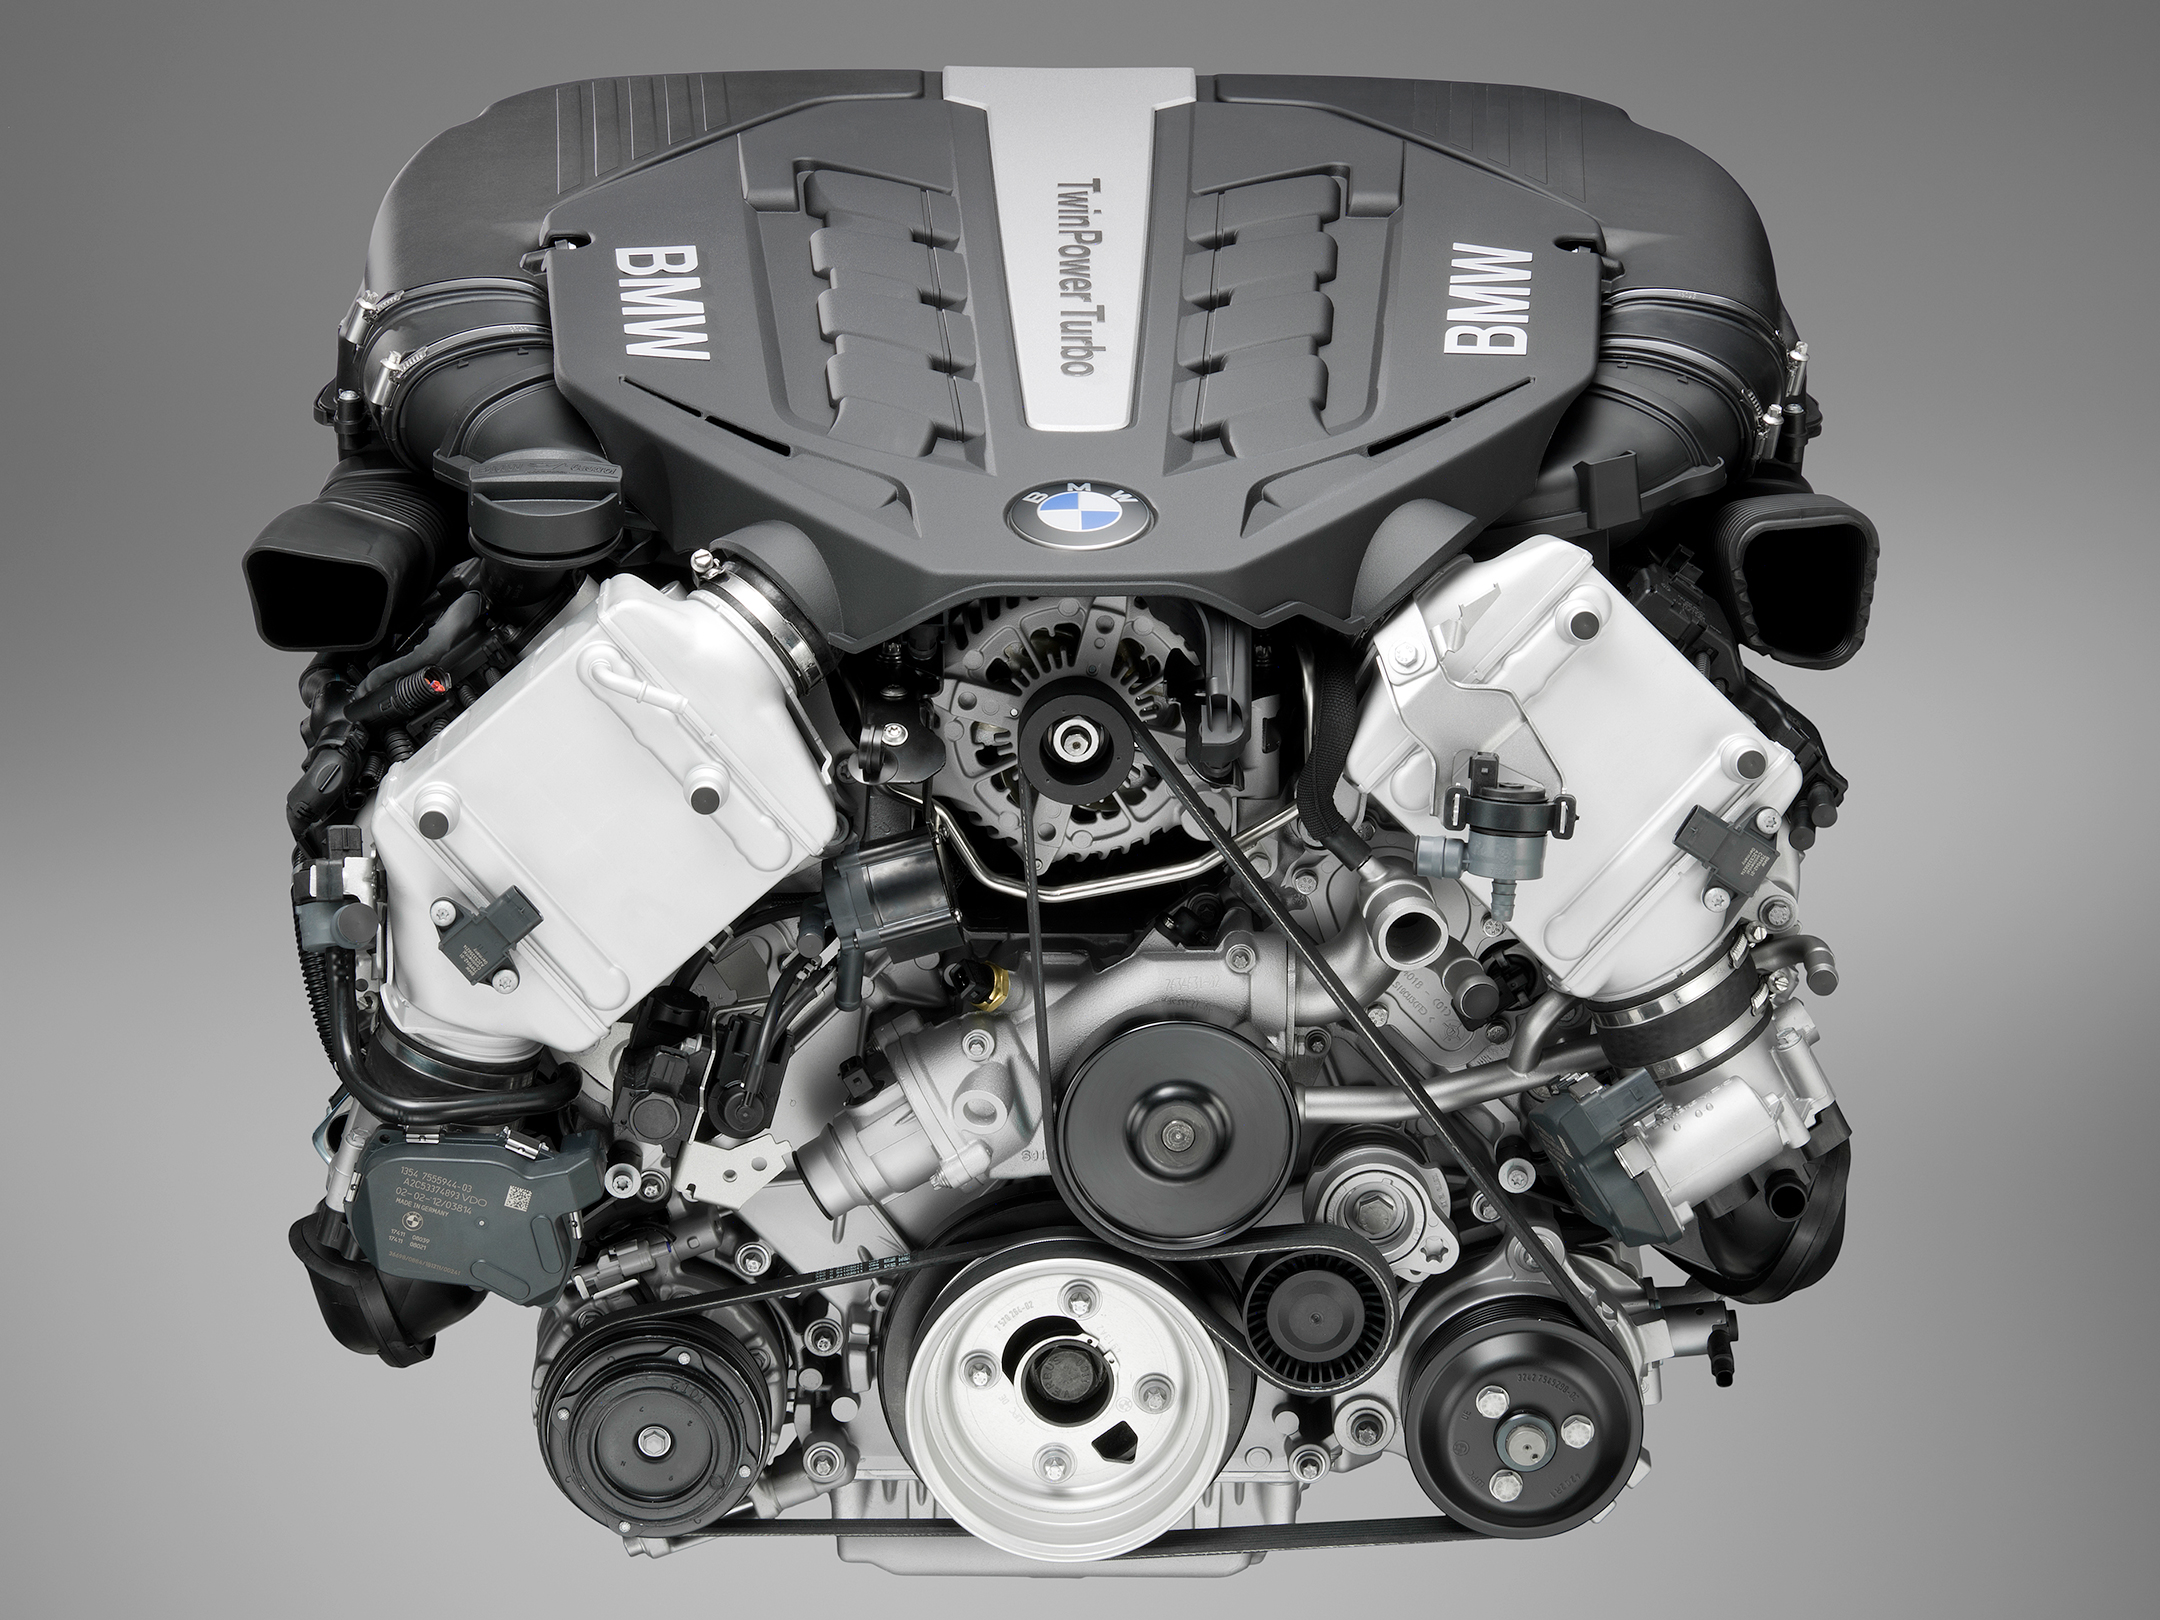 BMW Twinpower turbo - V8 - engine front